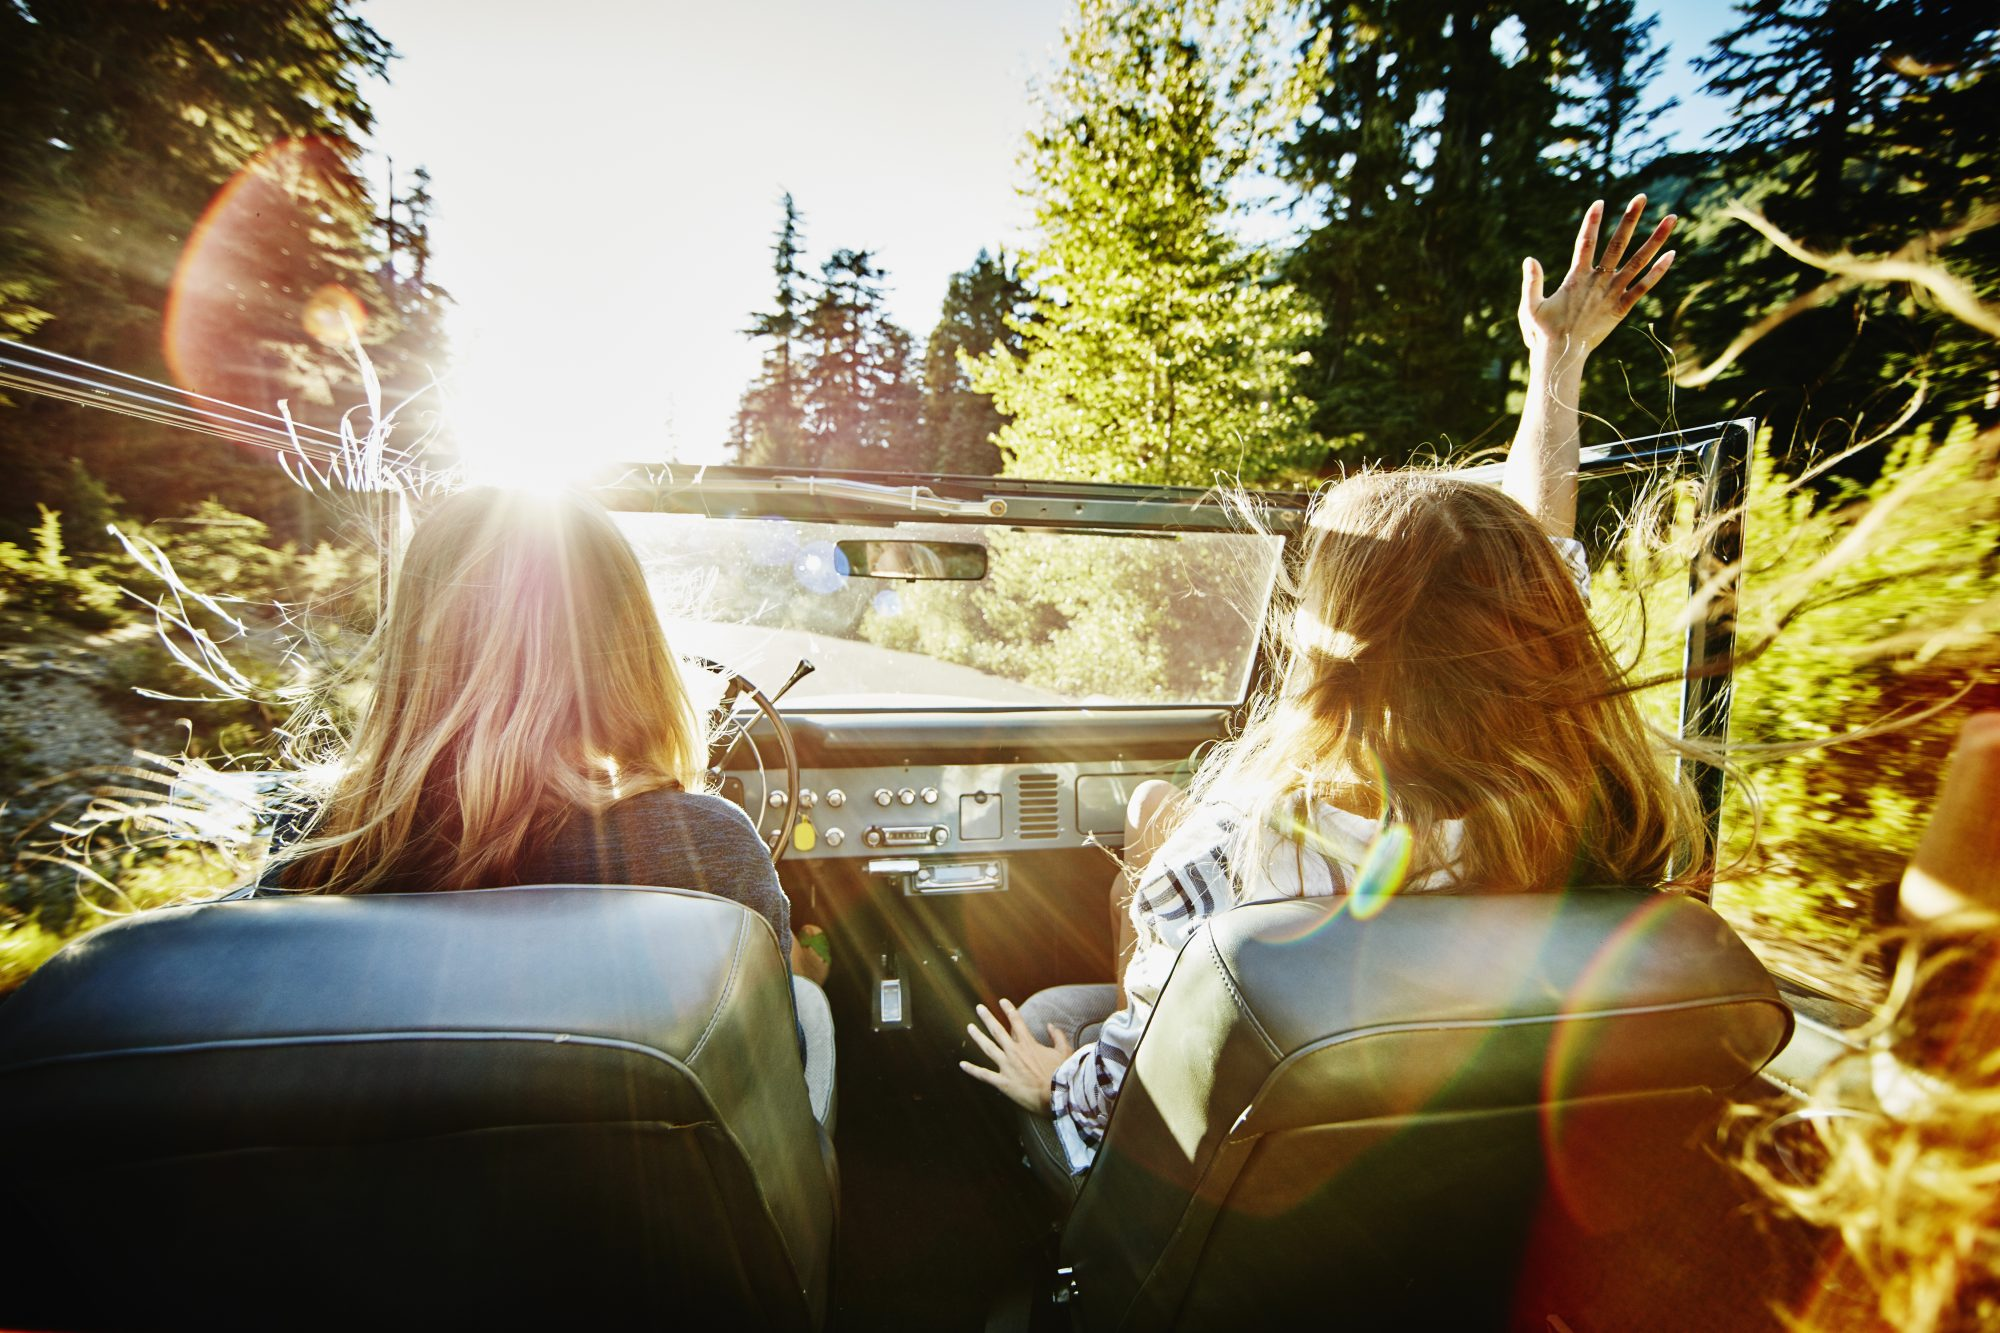 Friends riding in convertible on summer evening